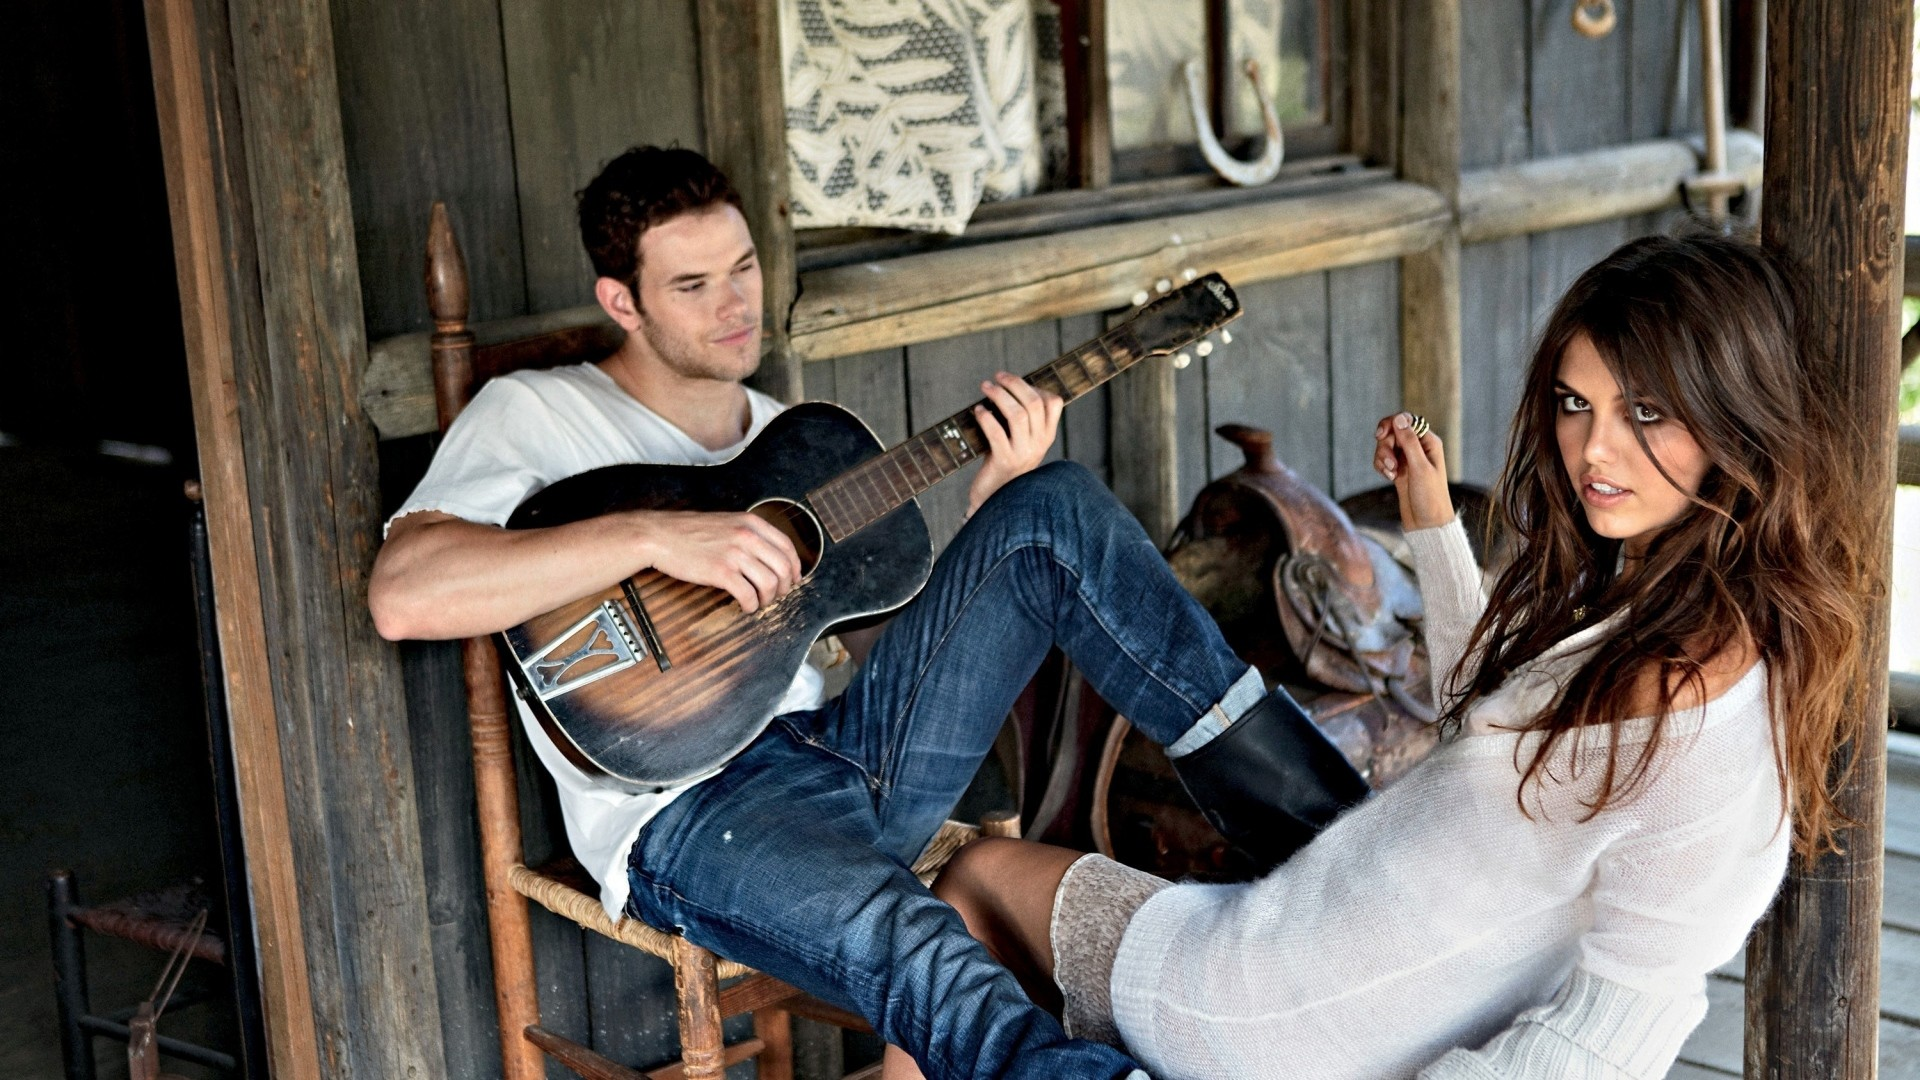 1920x1080 Preview wallpaper kellan lutz, brunette, guitar, girl, home, play, model